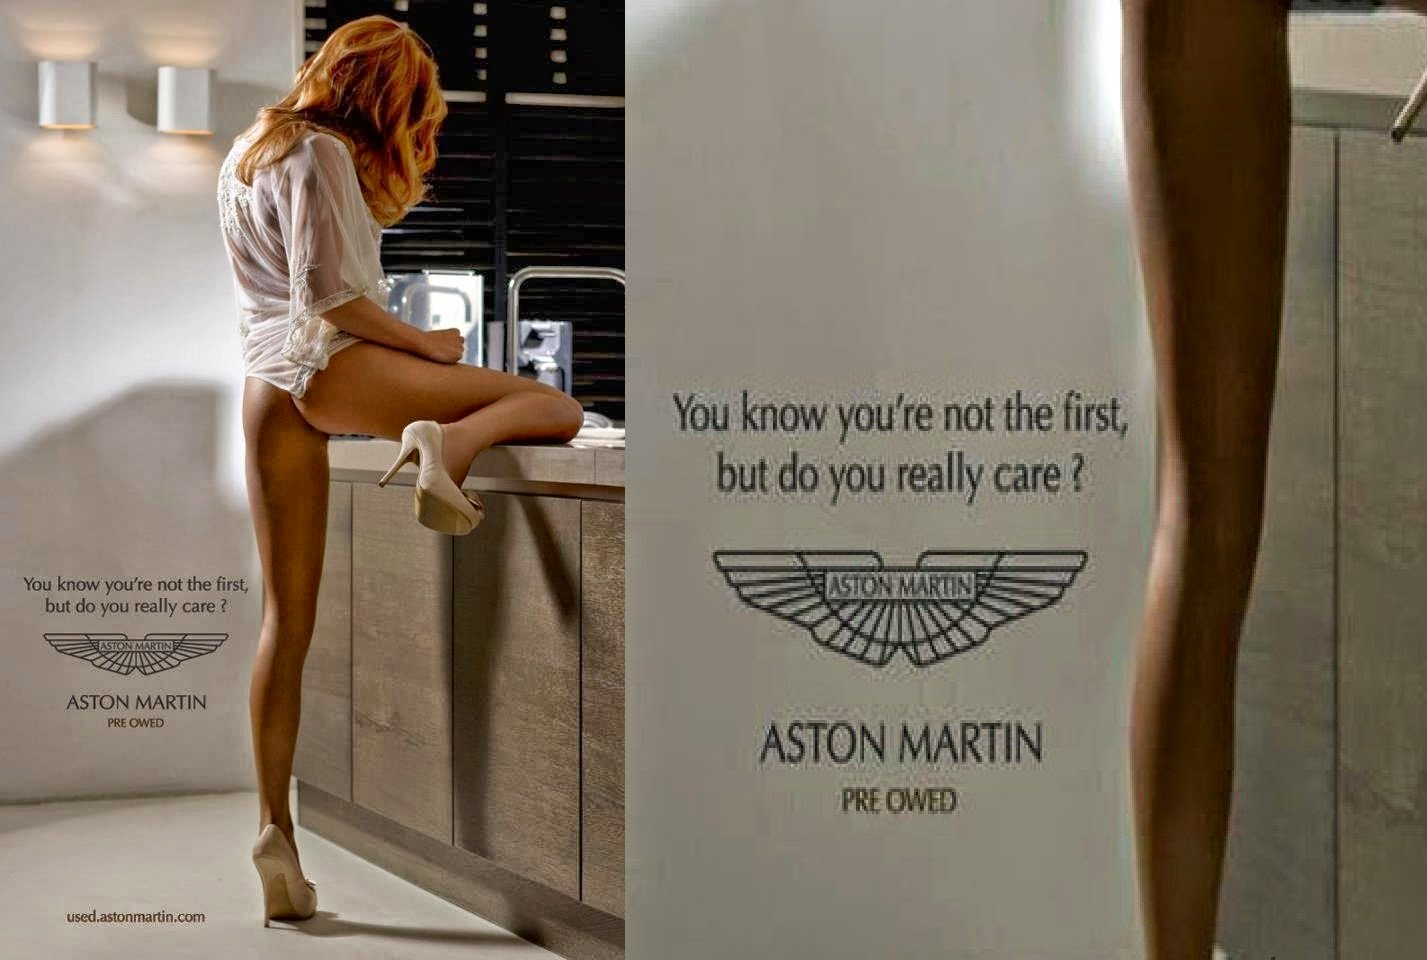 Drstrangelove On Twitter Parodyad Dealers Thought It Was Real Used Car Austin Martin Fantastic Aston Martin Used Ad 65 With Car Model With Aston Martin Used Ad Https T Co Xixq61zoa8